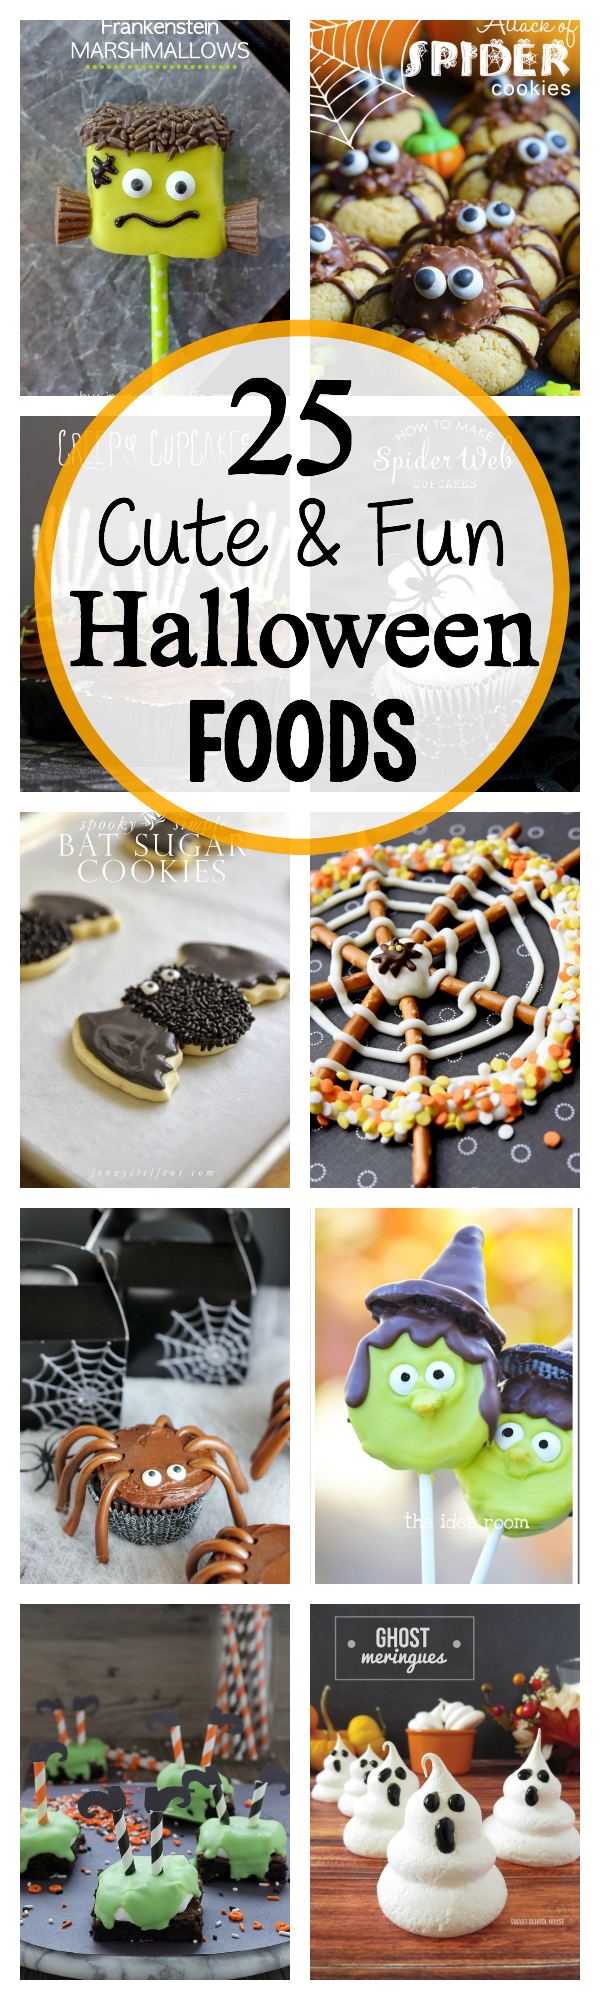 25 Cute and Easy Halloween Treats-These cute Halloween treat ideas are so much fun to make for Halloween! they are darling and the kids will love them! #Halloween #treats #dessert